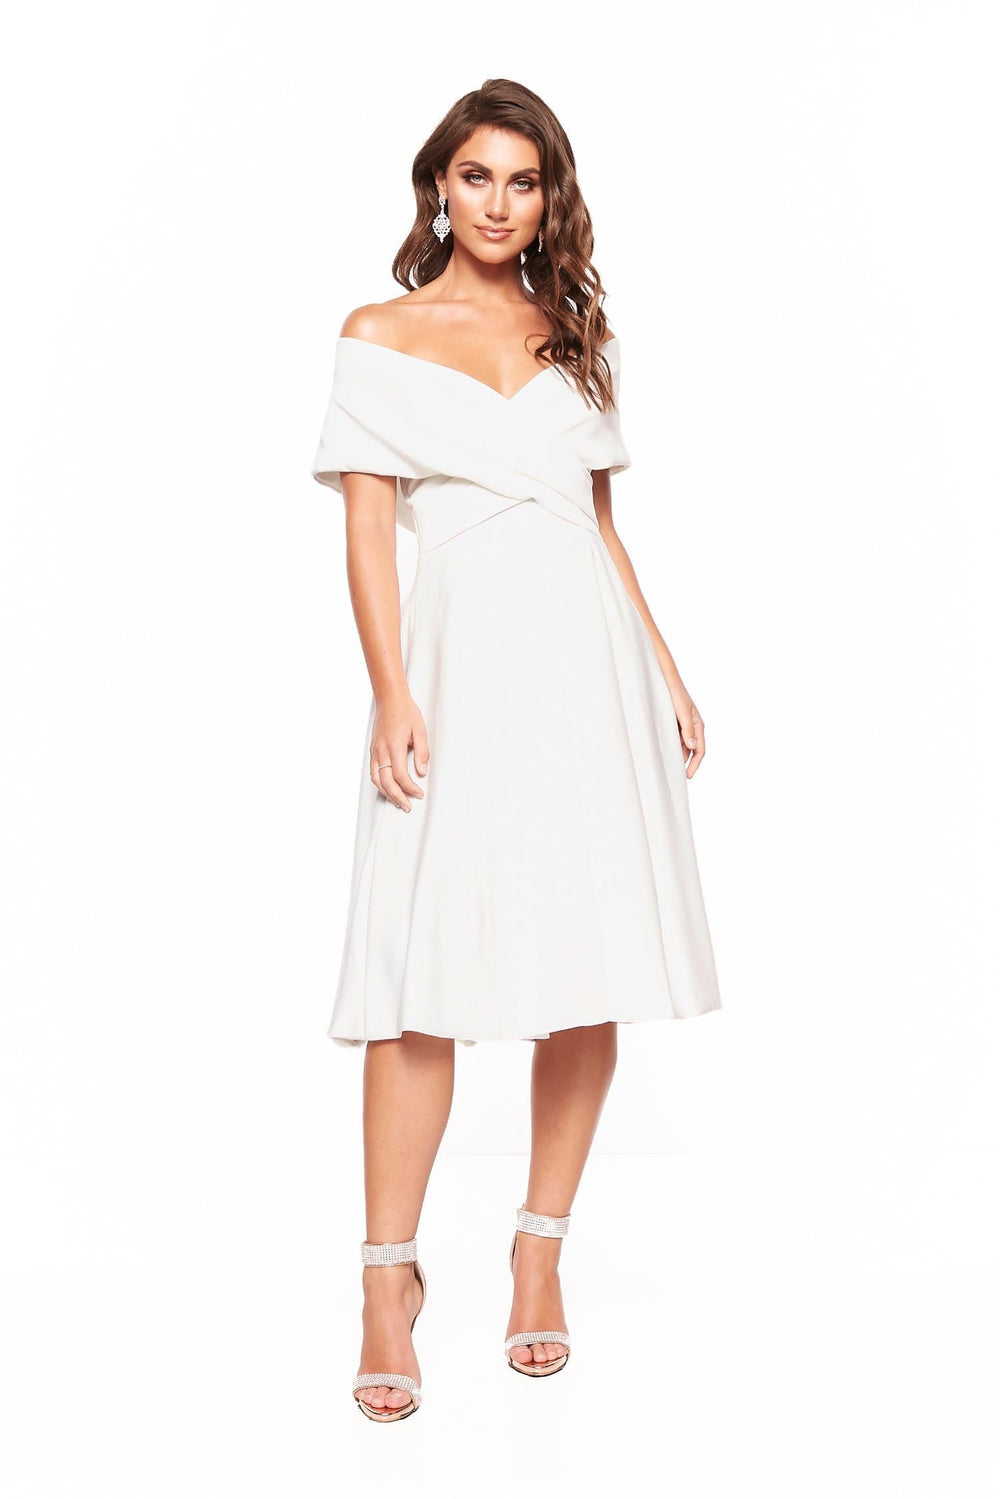 A&N Elyse Flowing Off-Shoulder Cocktail Dress - White